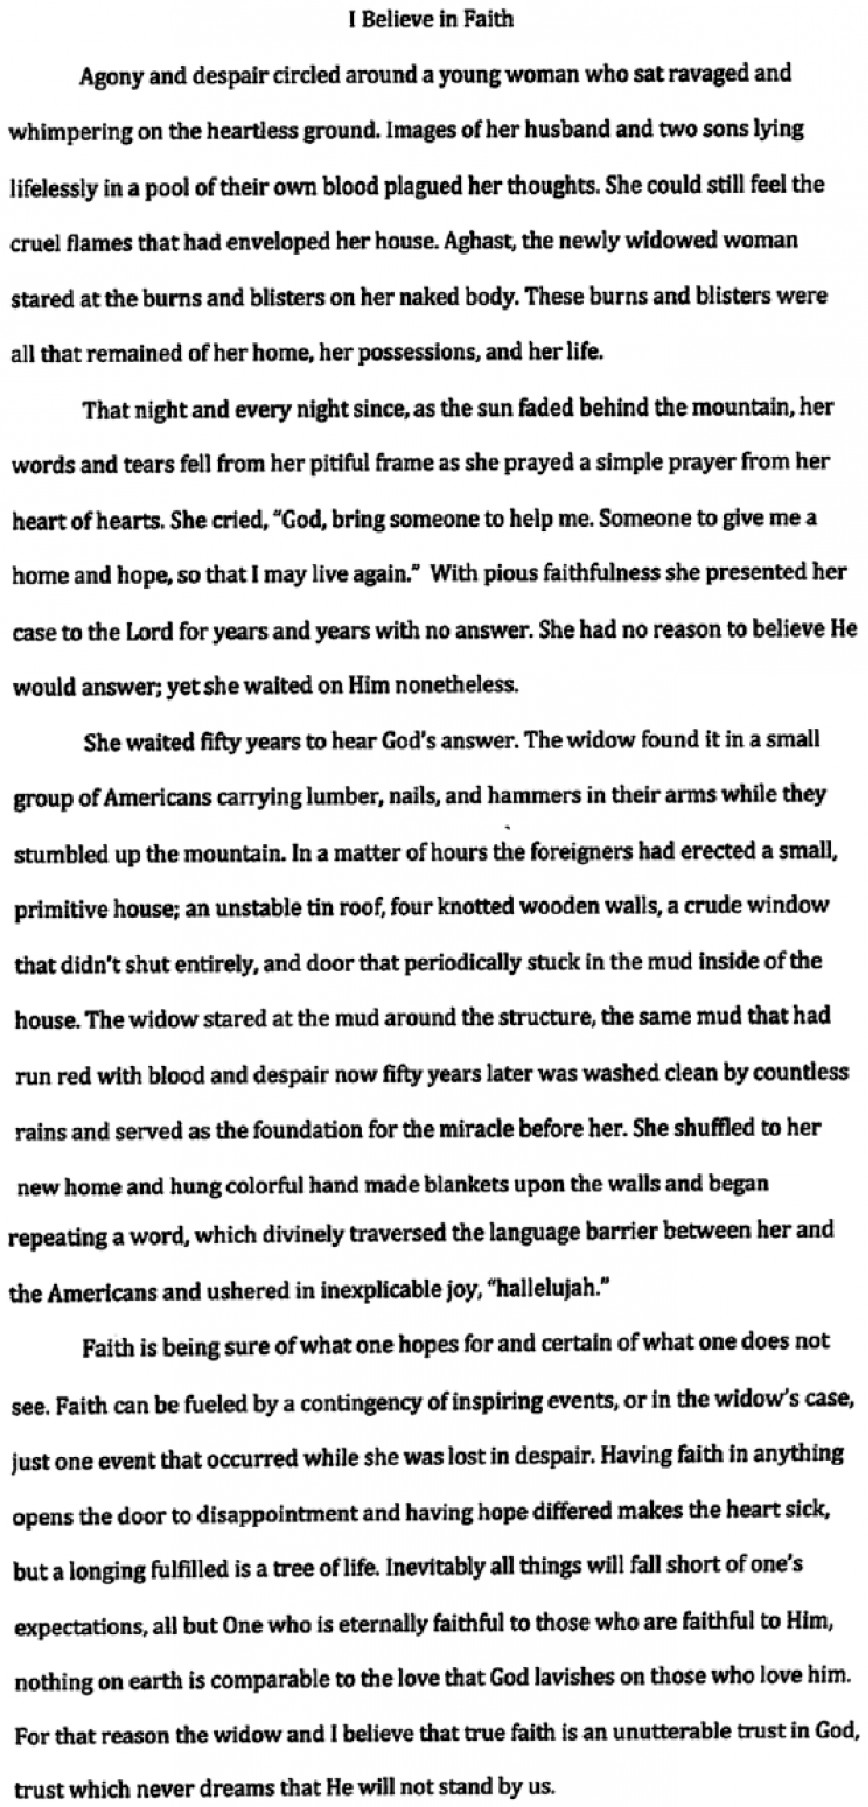 004 Is There One True Religion Essay Example Charlies This I Unique